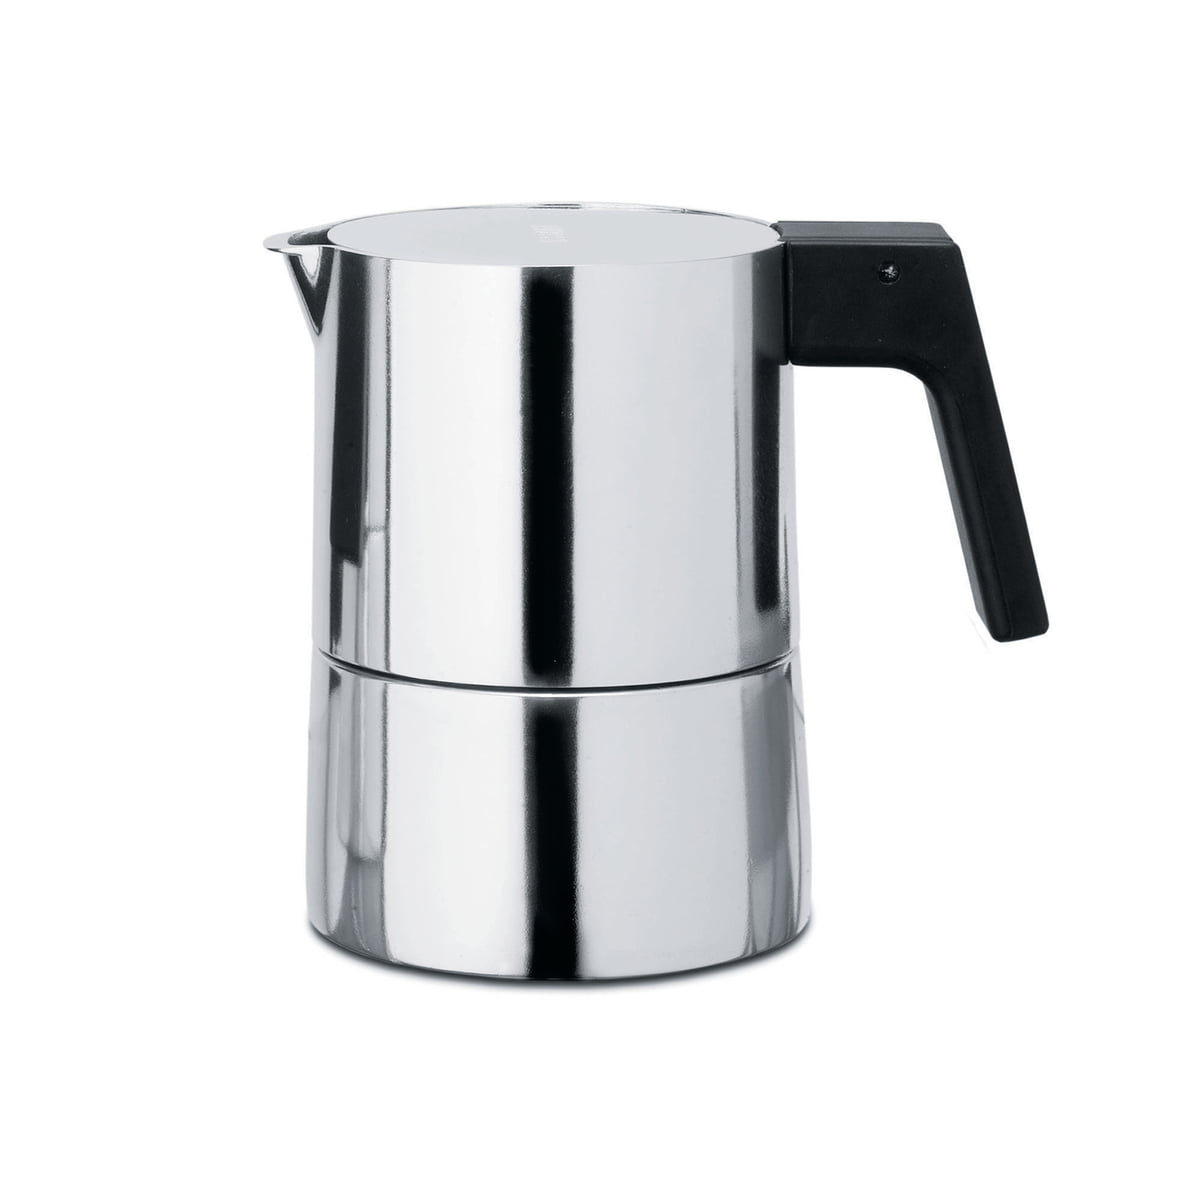 Alessi Espressokocher espresso maker pina by piero lissoni